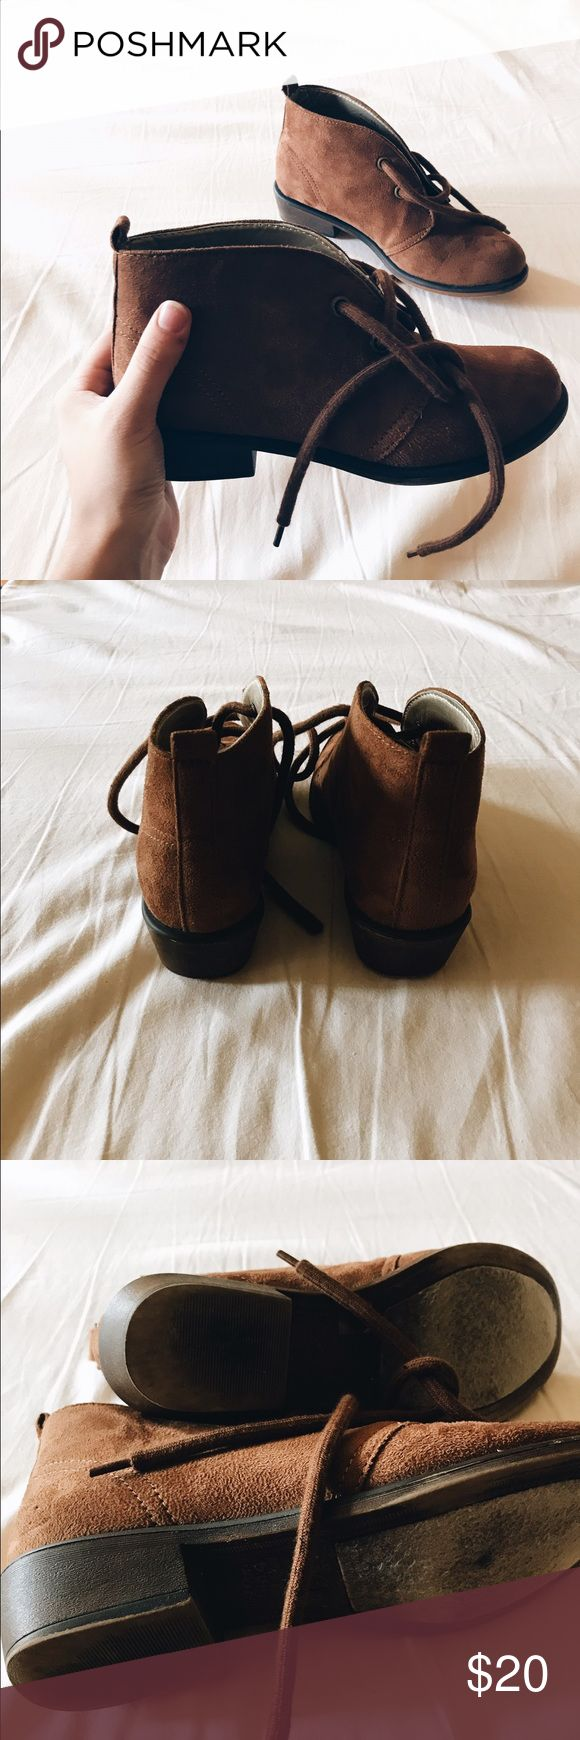 Brown camel suede ankle platform boots Minimal signs of wear, very soft suede material, stitching around back heels and towards the front. Thick shoelaces; slight heel, sturdy platform. These are seriously the cutest booties ever, I wish I could fit 😕 dirty laundry Shoes Ankle Boots & Booties